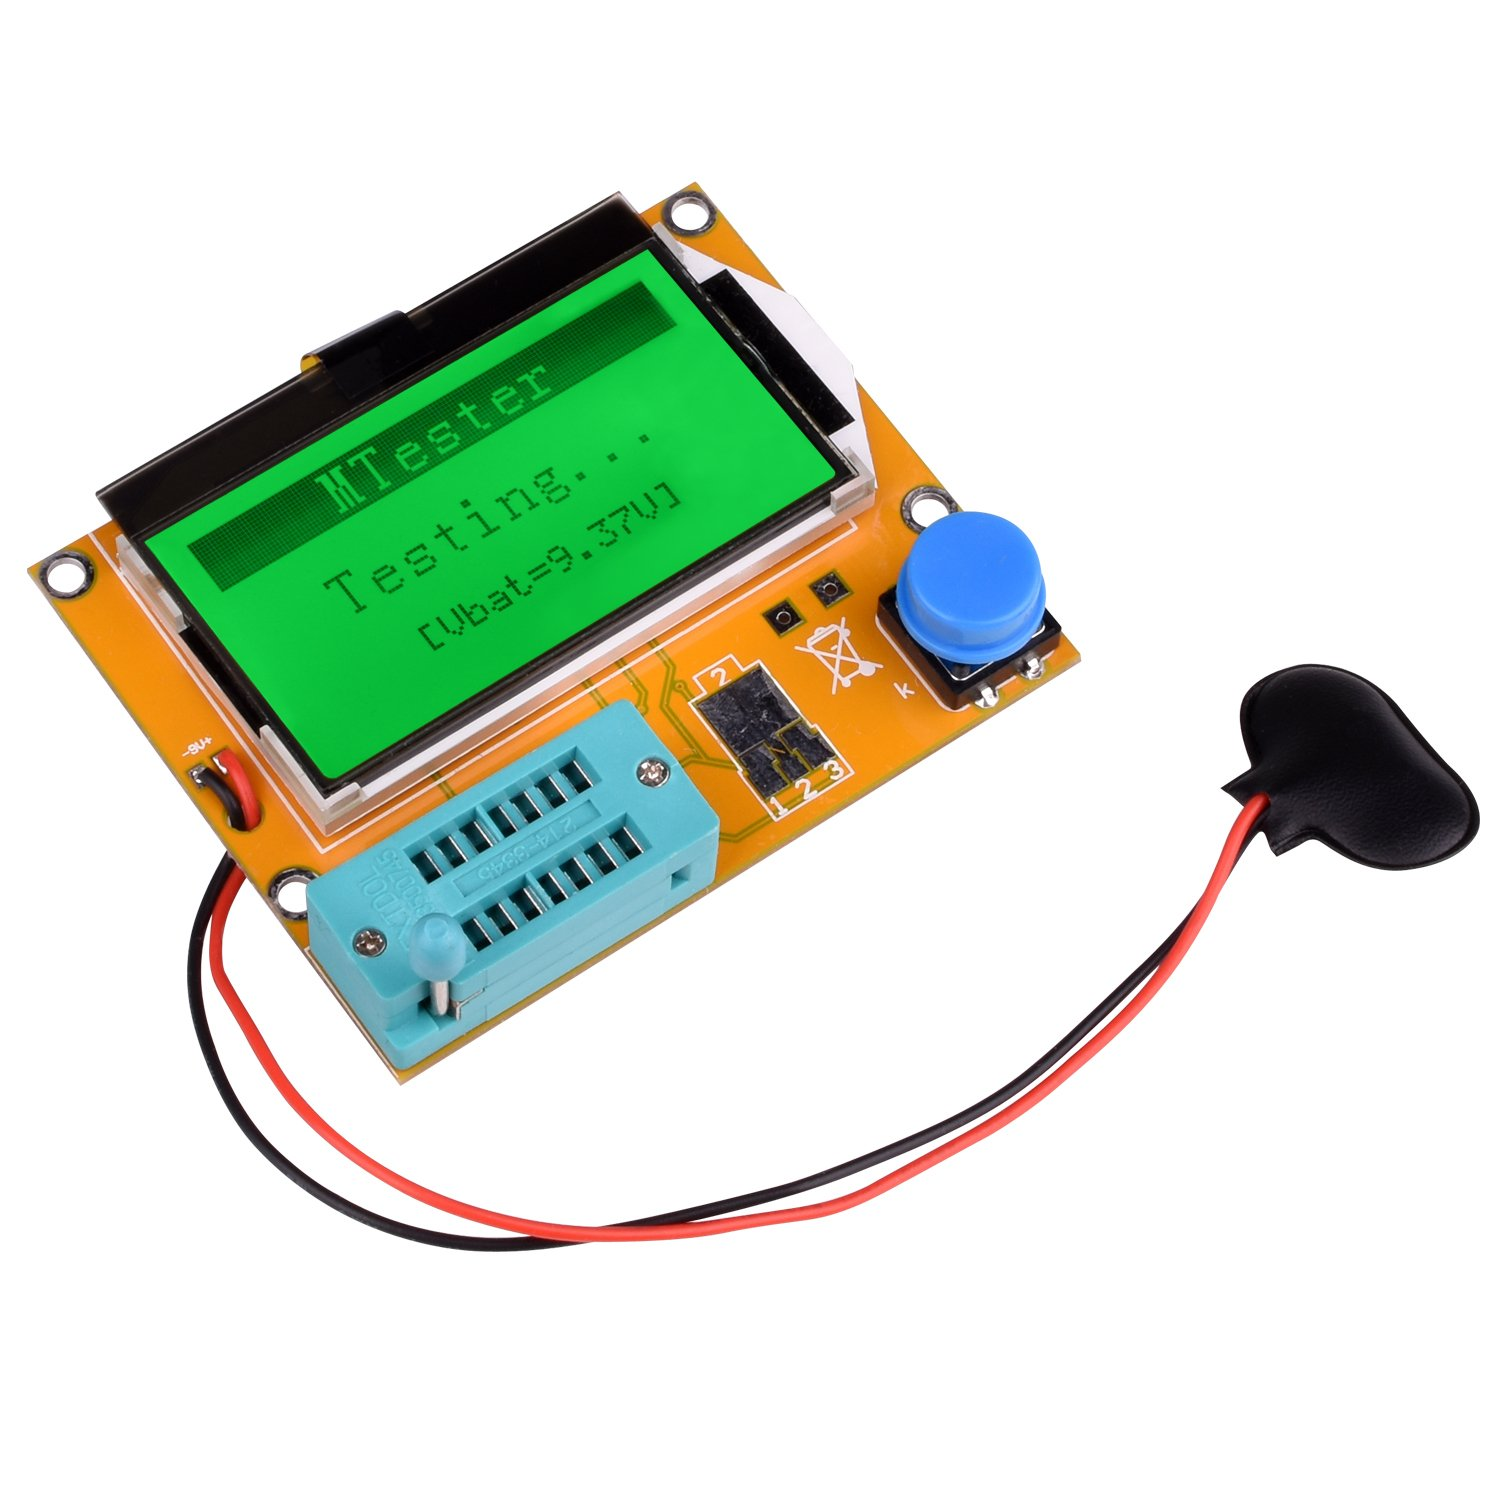 Multifunction Meter DIY kit, kuman Mega 328 Graphic transistor Tester, NPN PNP Diodes Triode Capacitor ESR SCR MOSFET Resistor Inductance LCD Display Checker with case and screwdriver K77 by Kuman (Image #4)